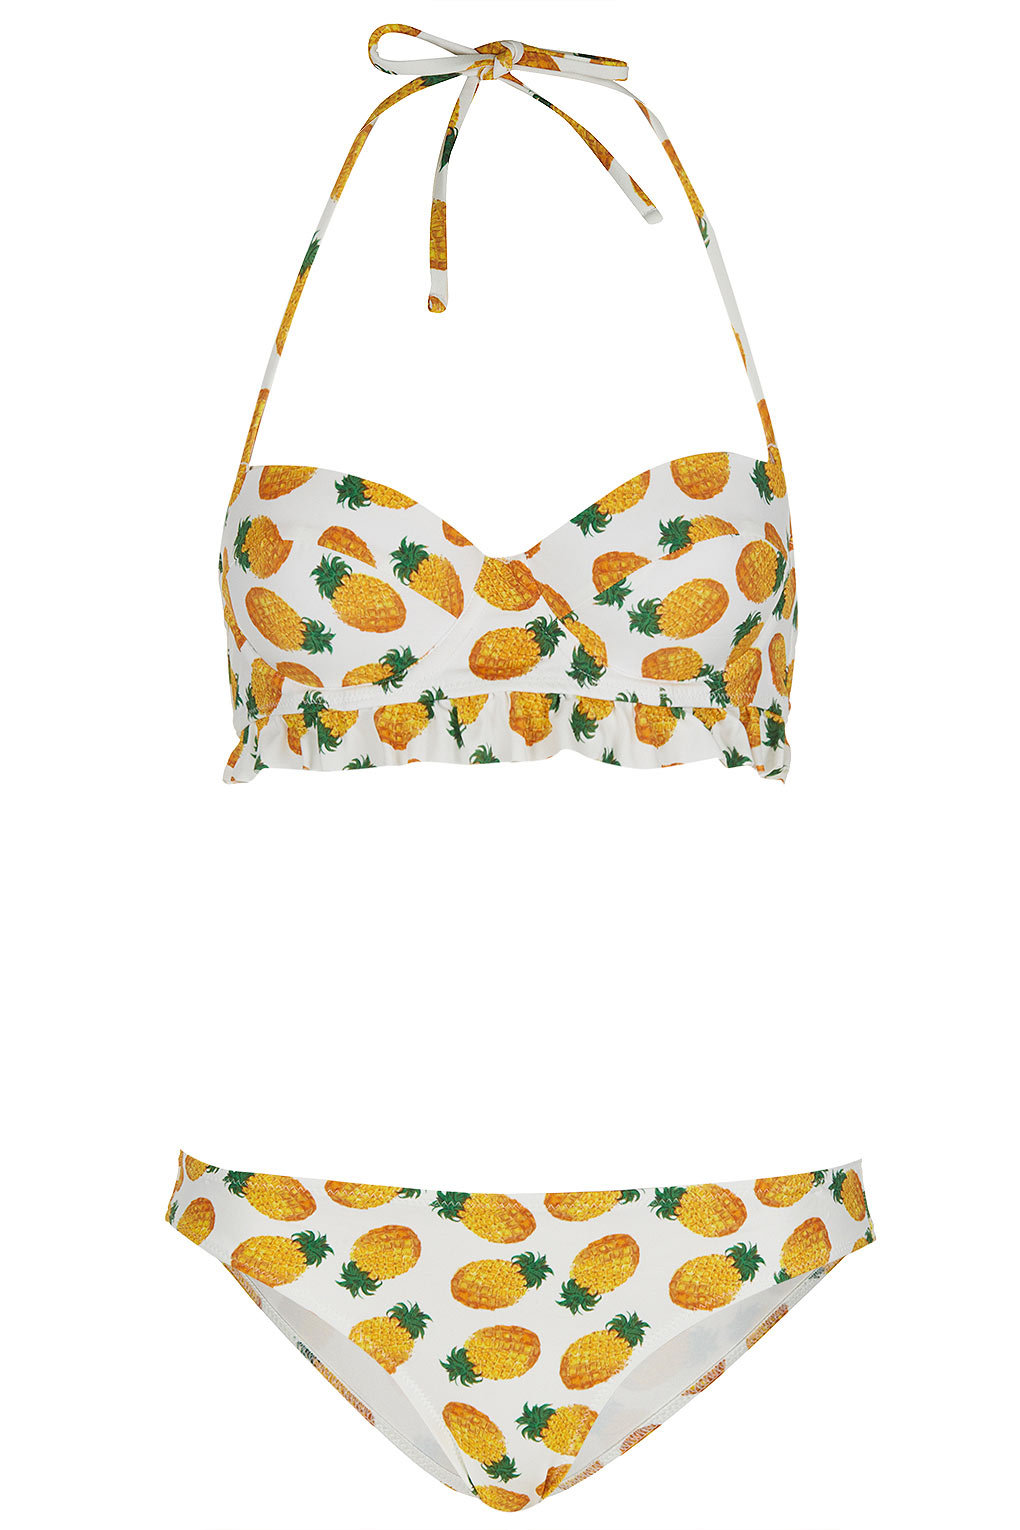 White Pineapple Bikini - Topshop on Wanelo